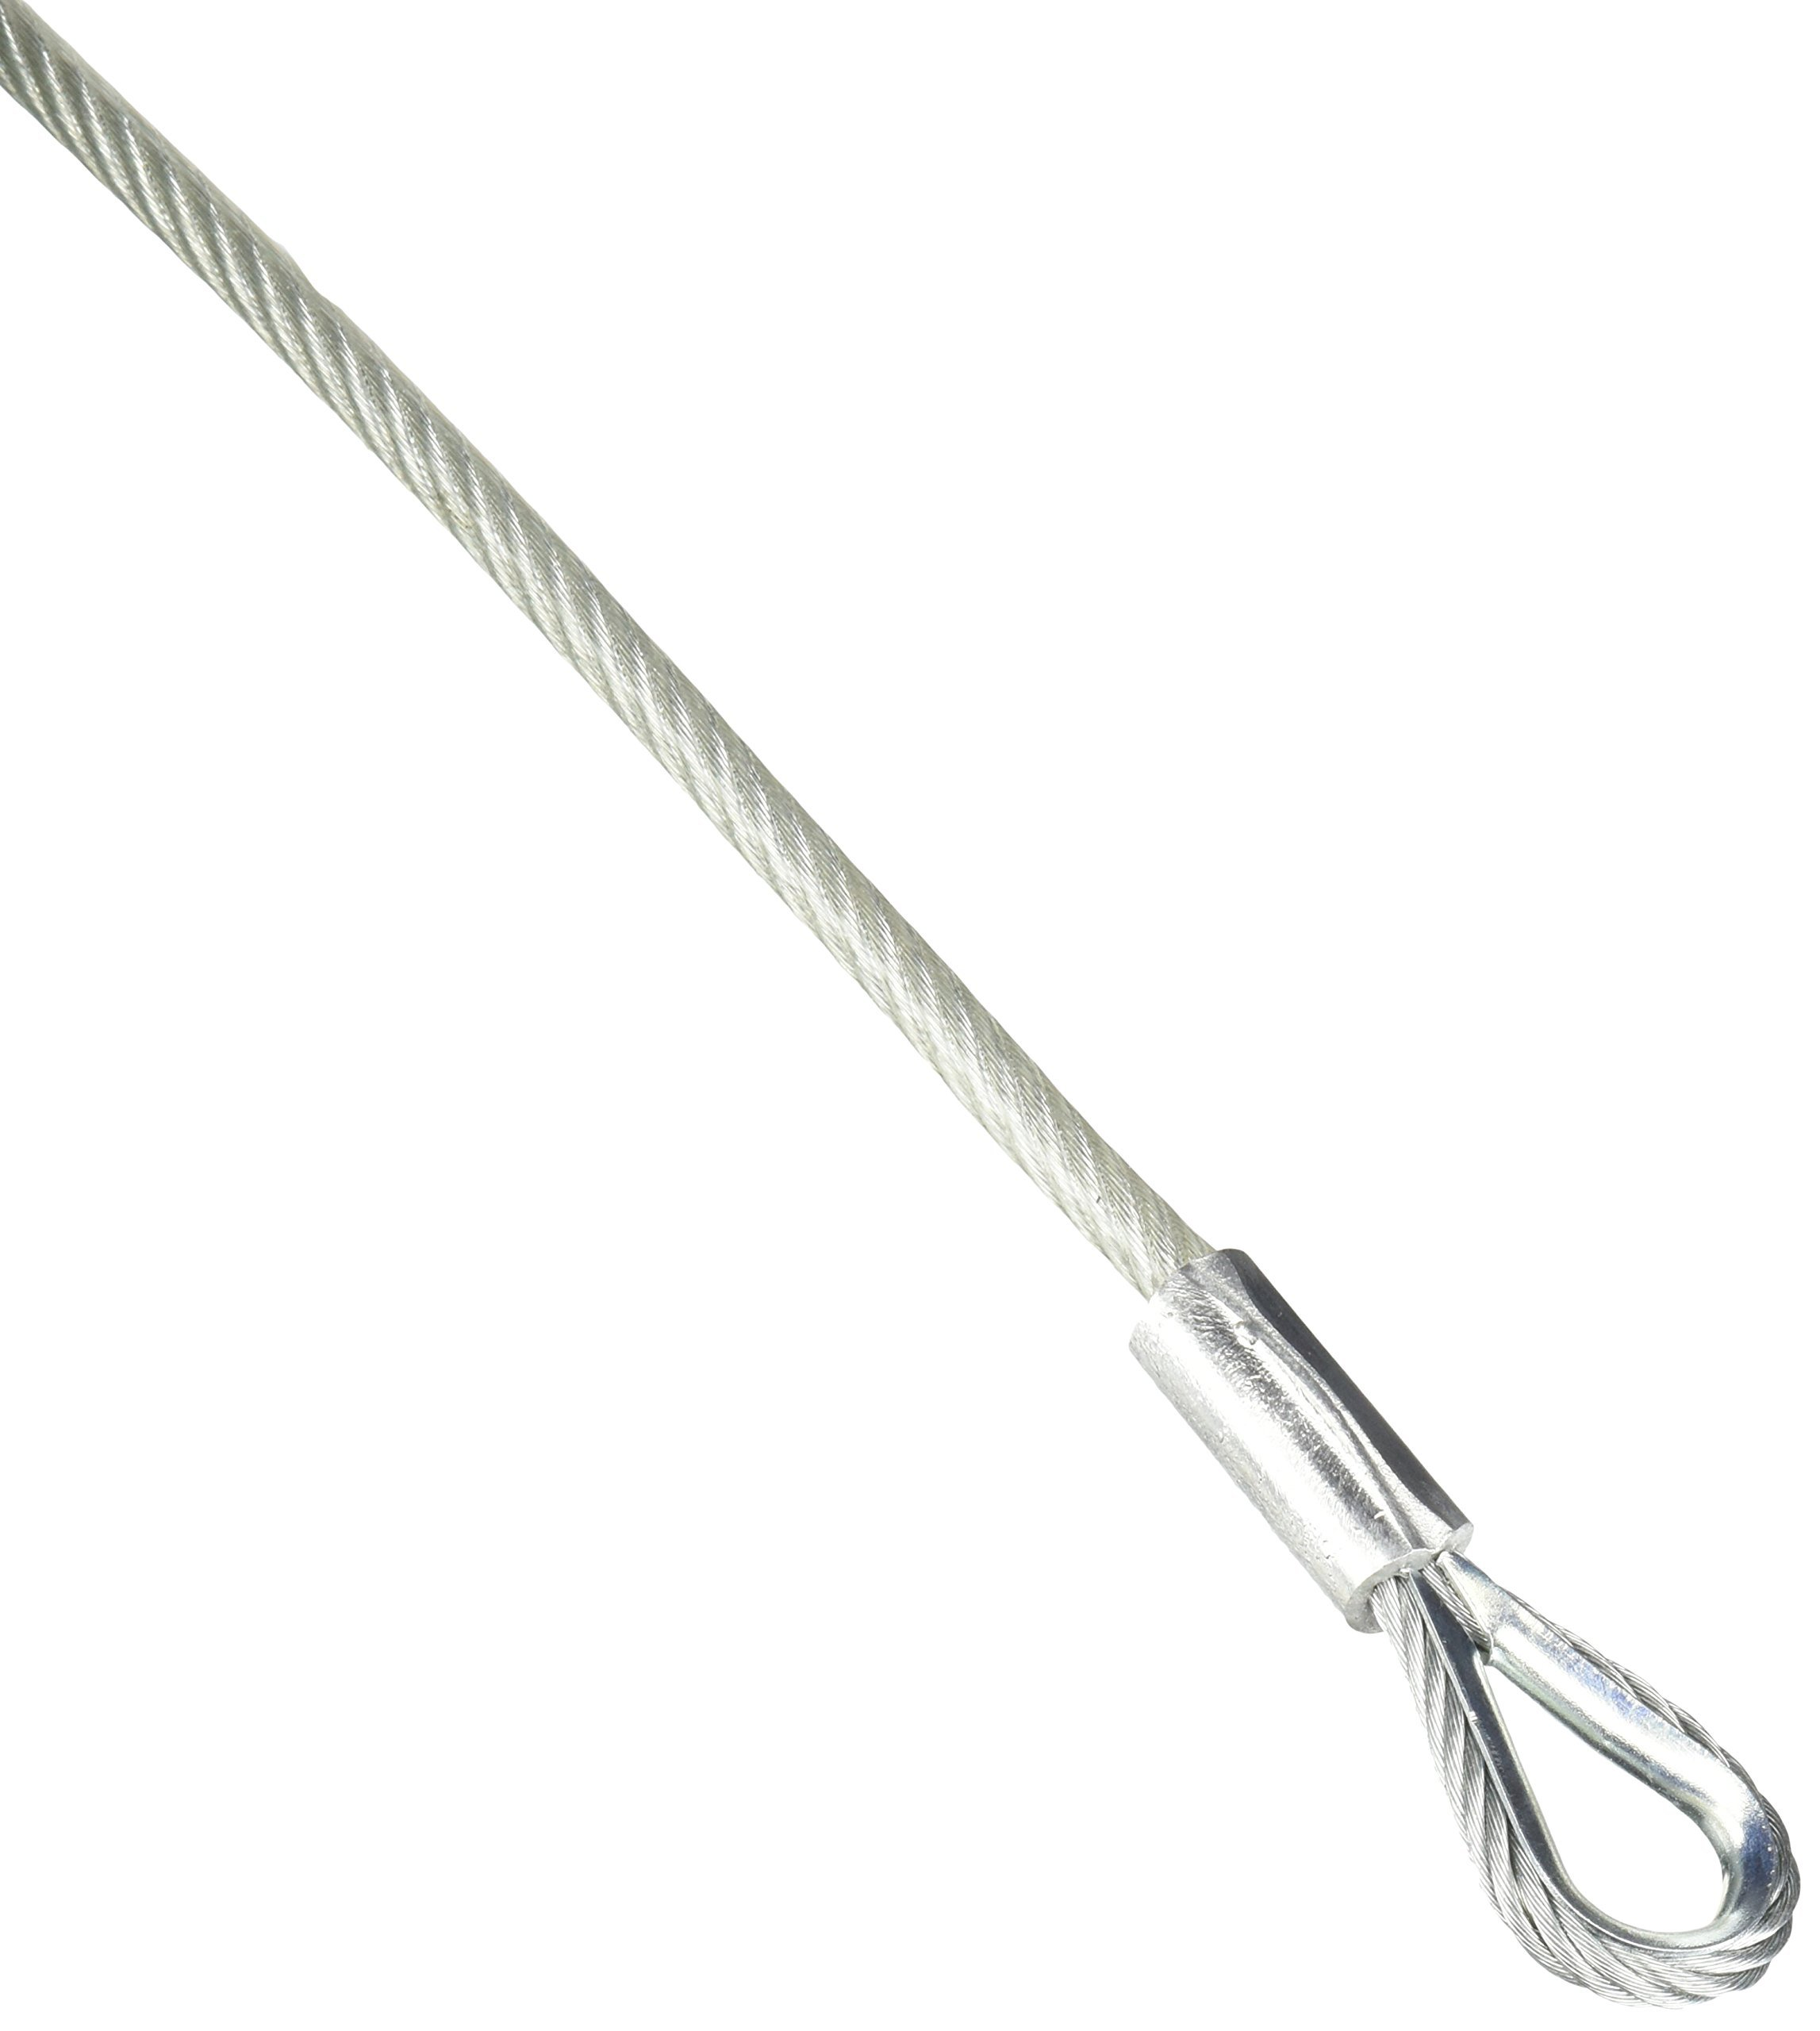 Tie Down Engineering Silver Standard 50235 Galvanized Cable 3/16 ID X 1/4 OD 100 Ft Roll